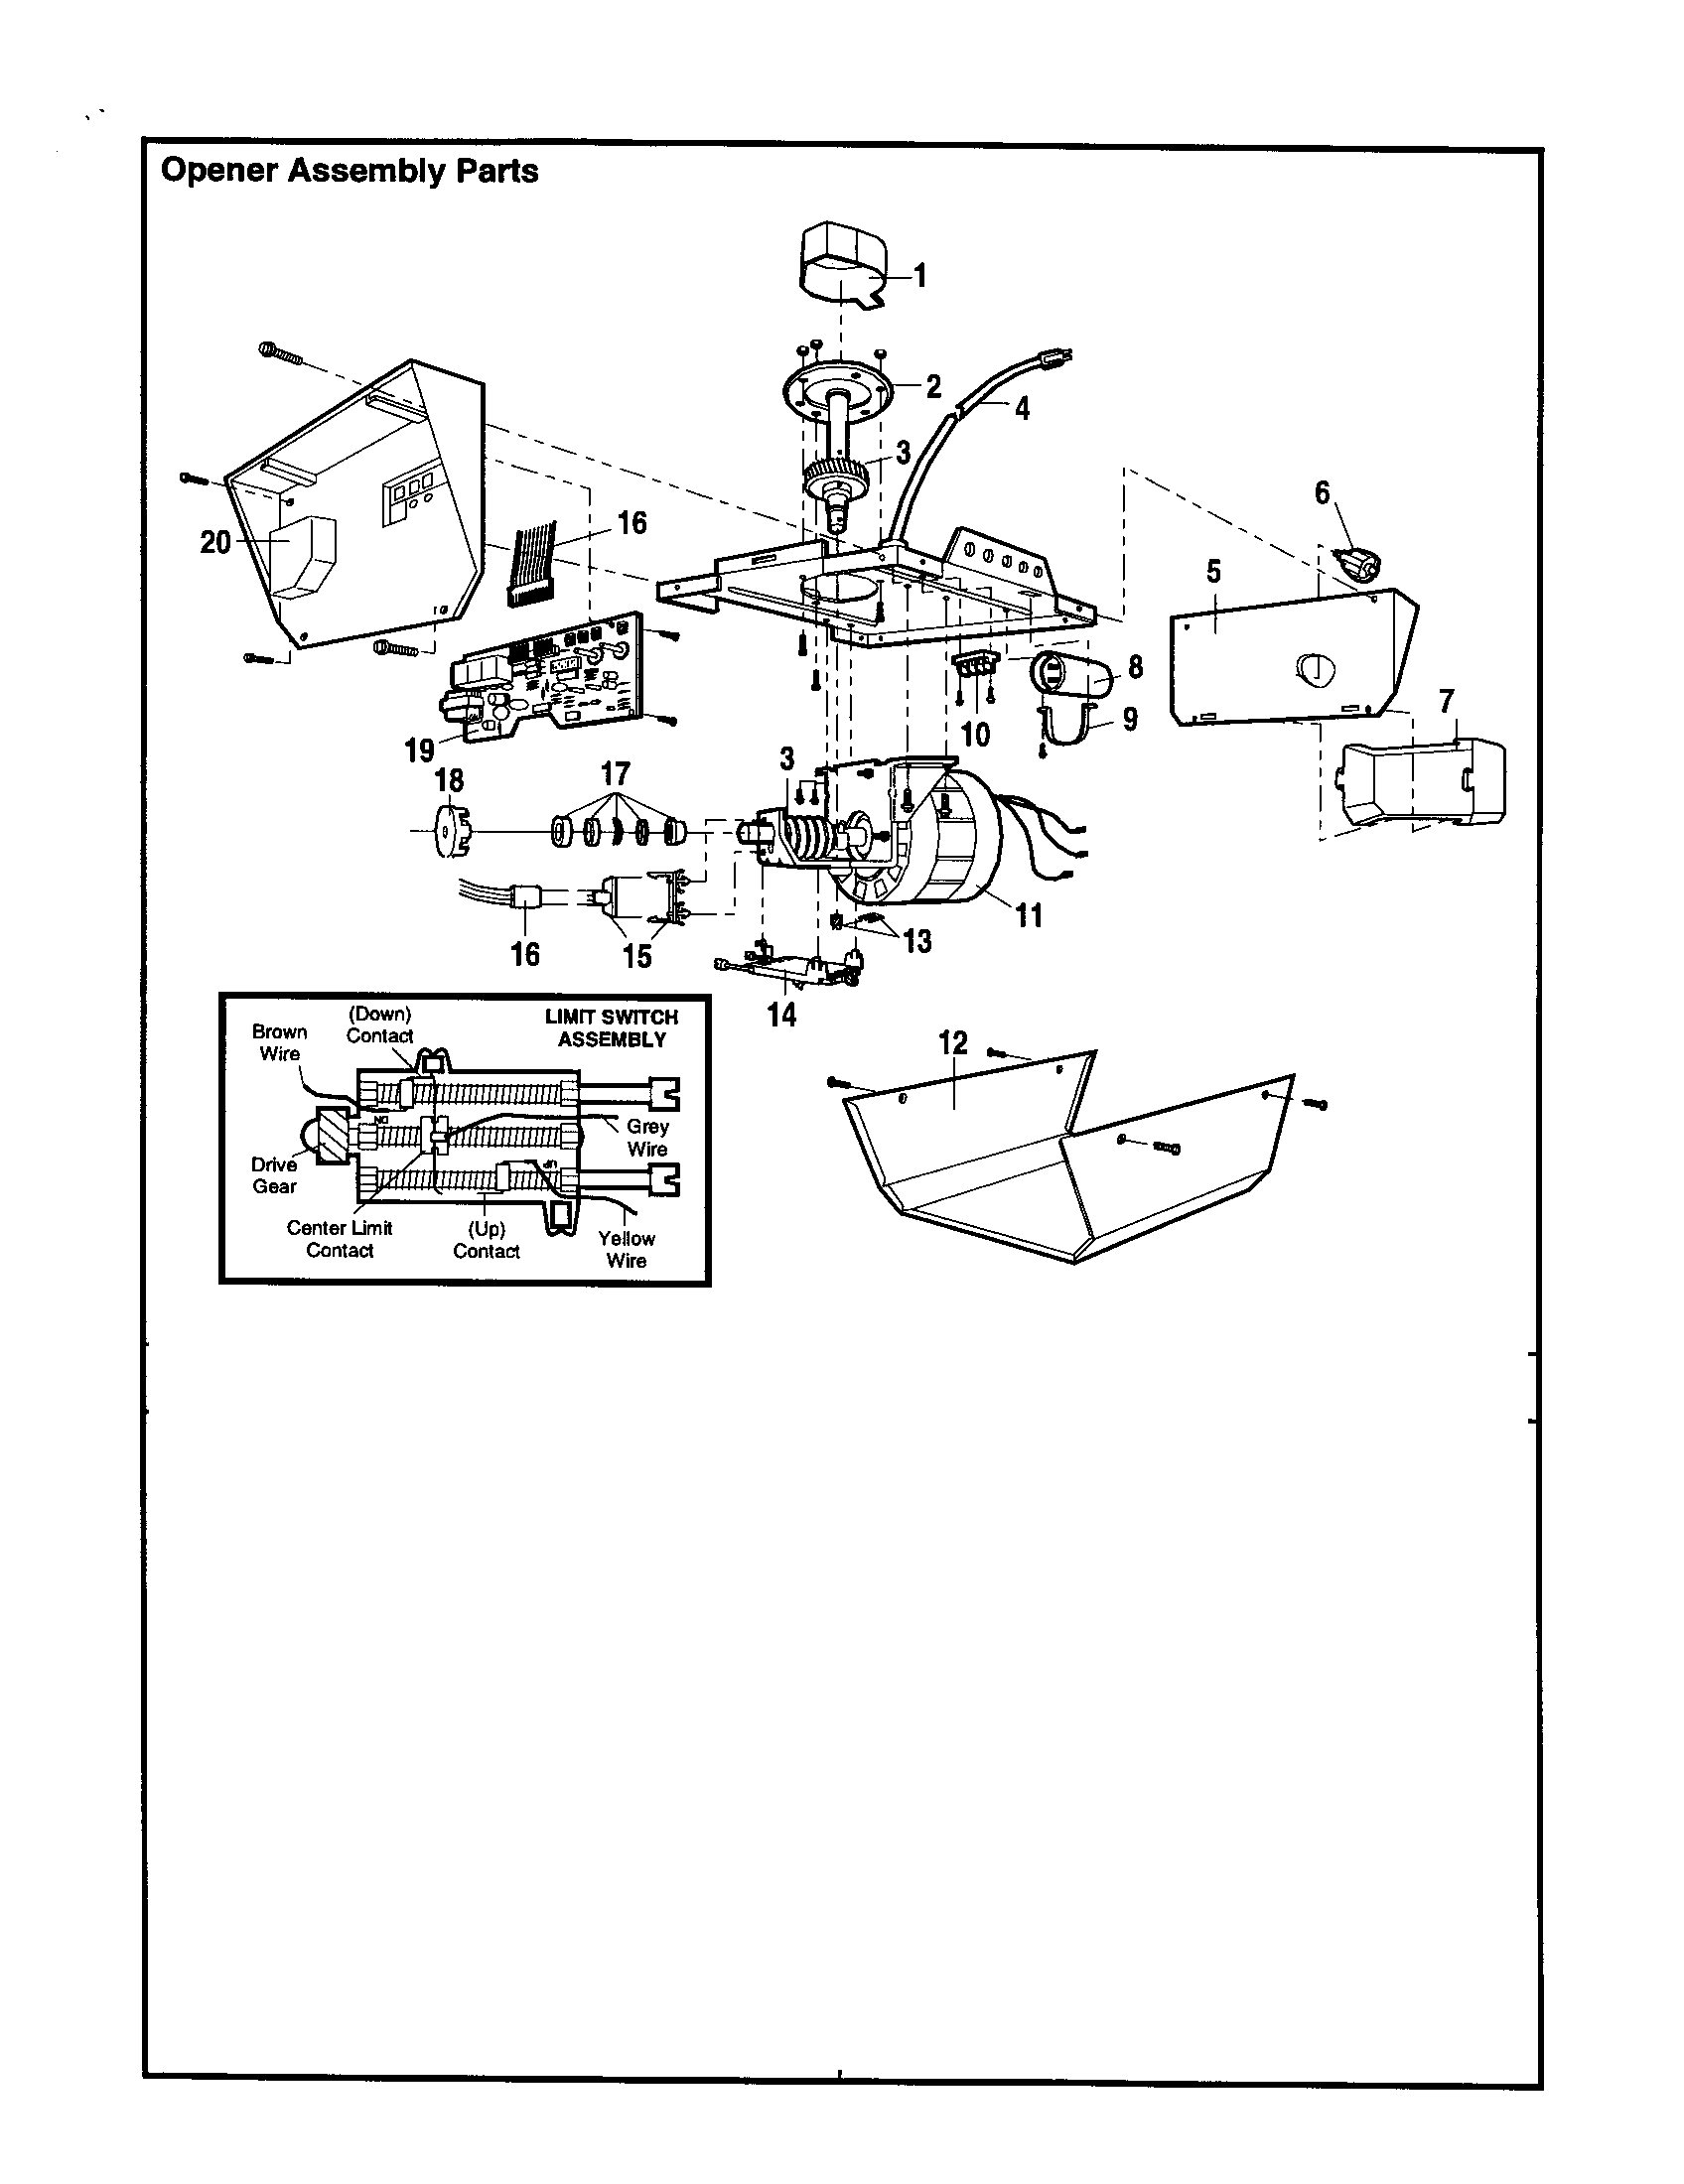 liftmaster garage door opener parts diagram | automotive ... liftmaster gate openner schematics